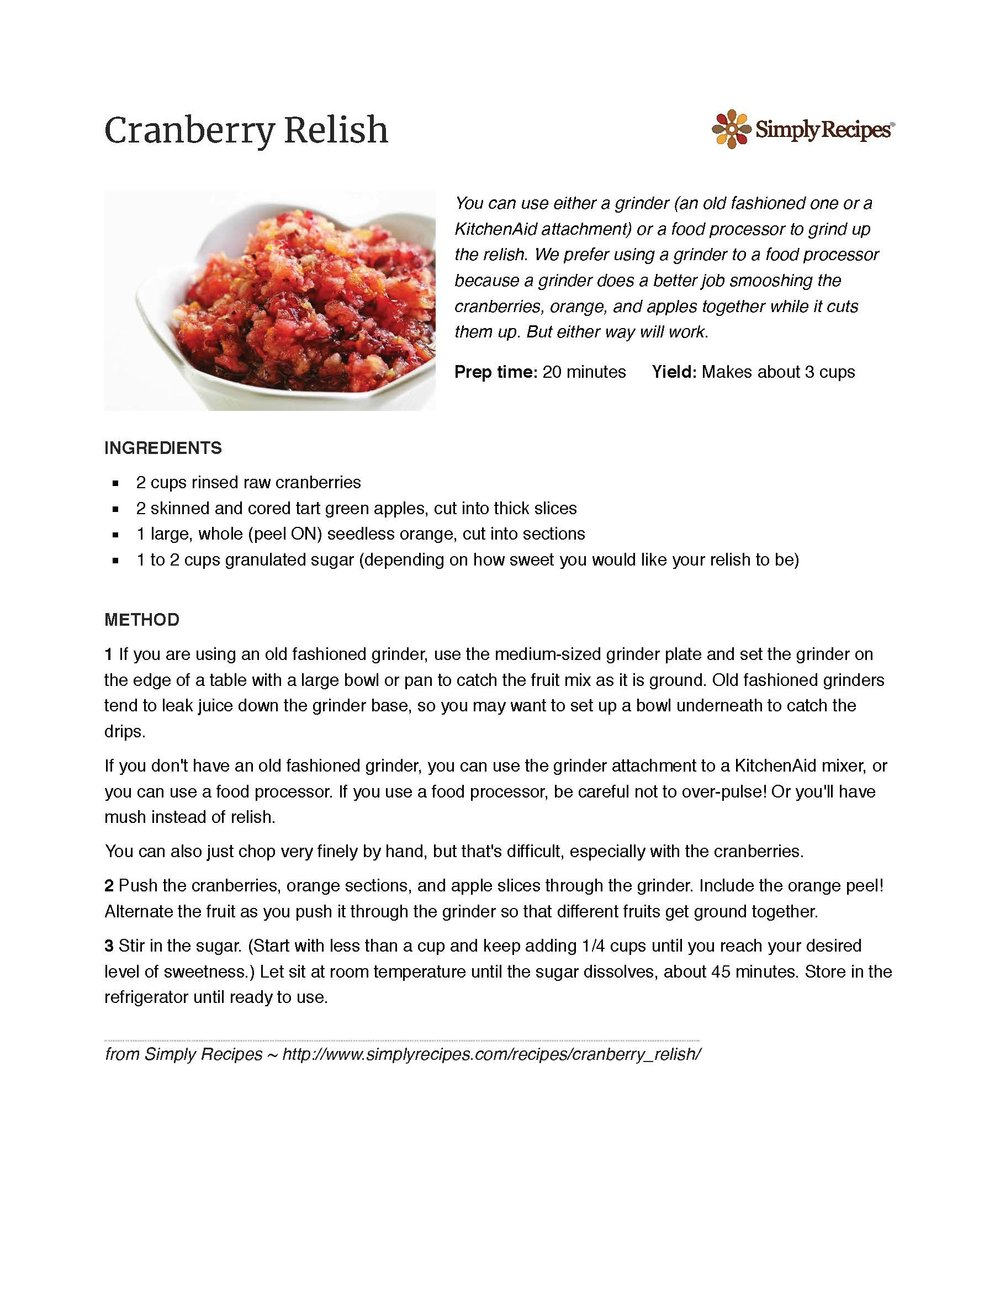 Cranberry Relish Recipe  SimplyRecipes.com.jpg